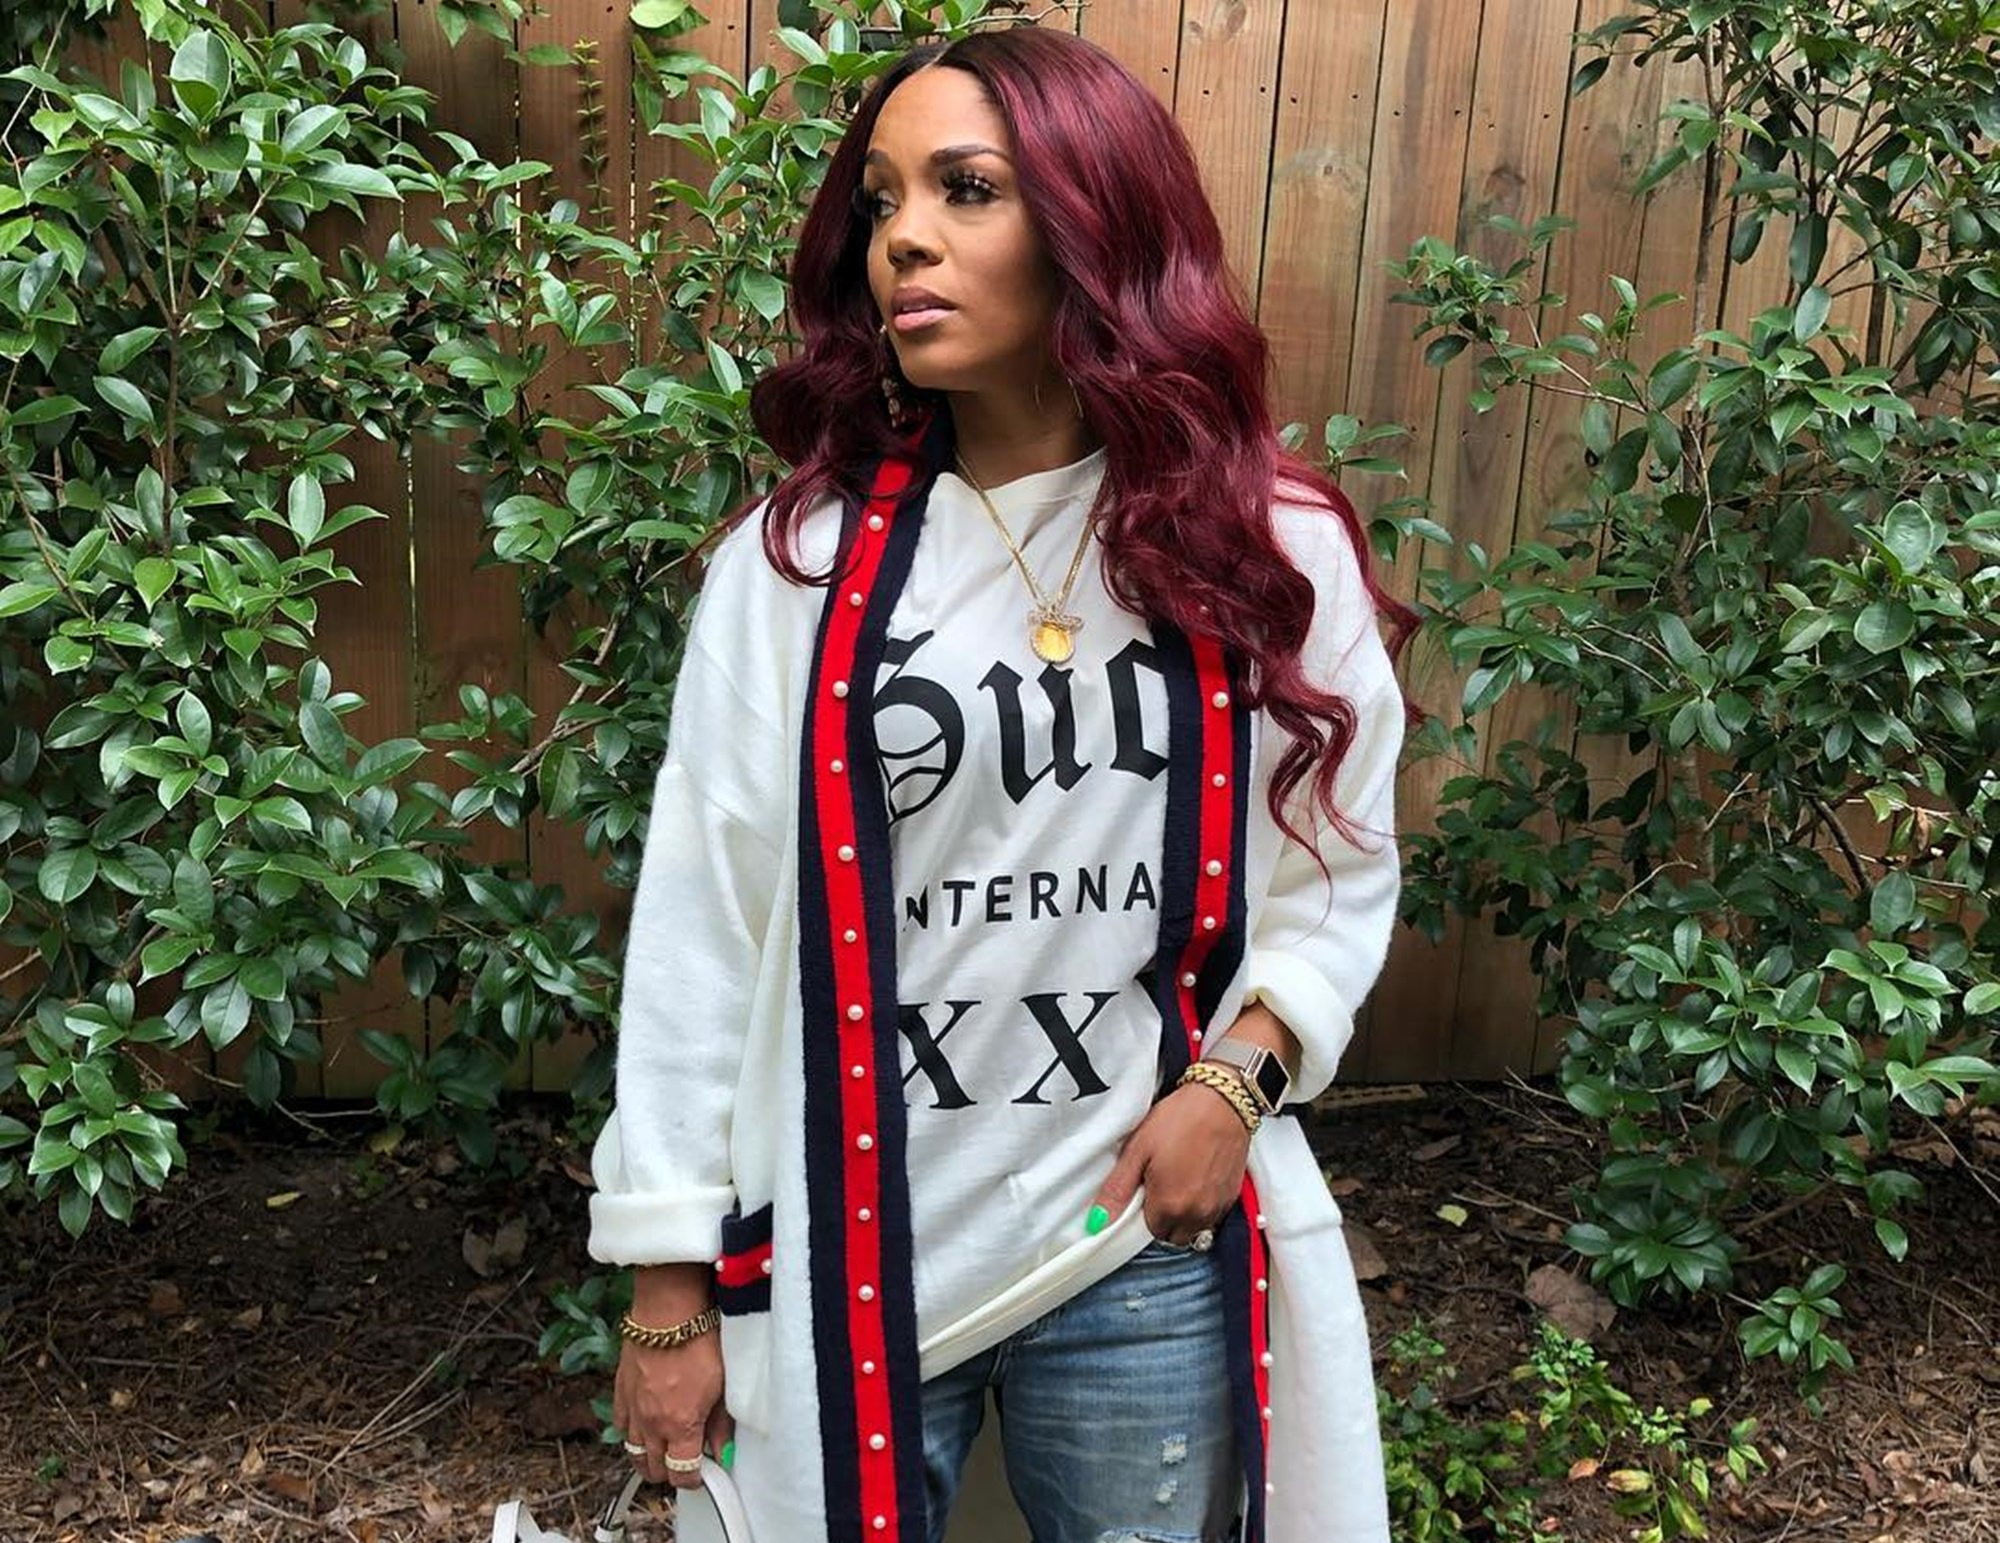 rasheeda-frosts-recent-video-at-pressed-boutique-has-fans-praising-her-looks